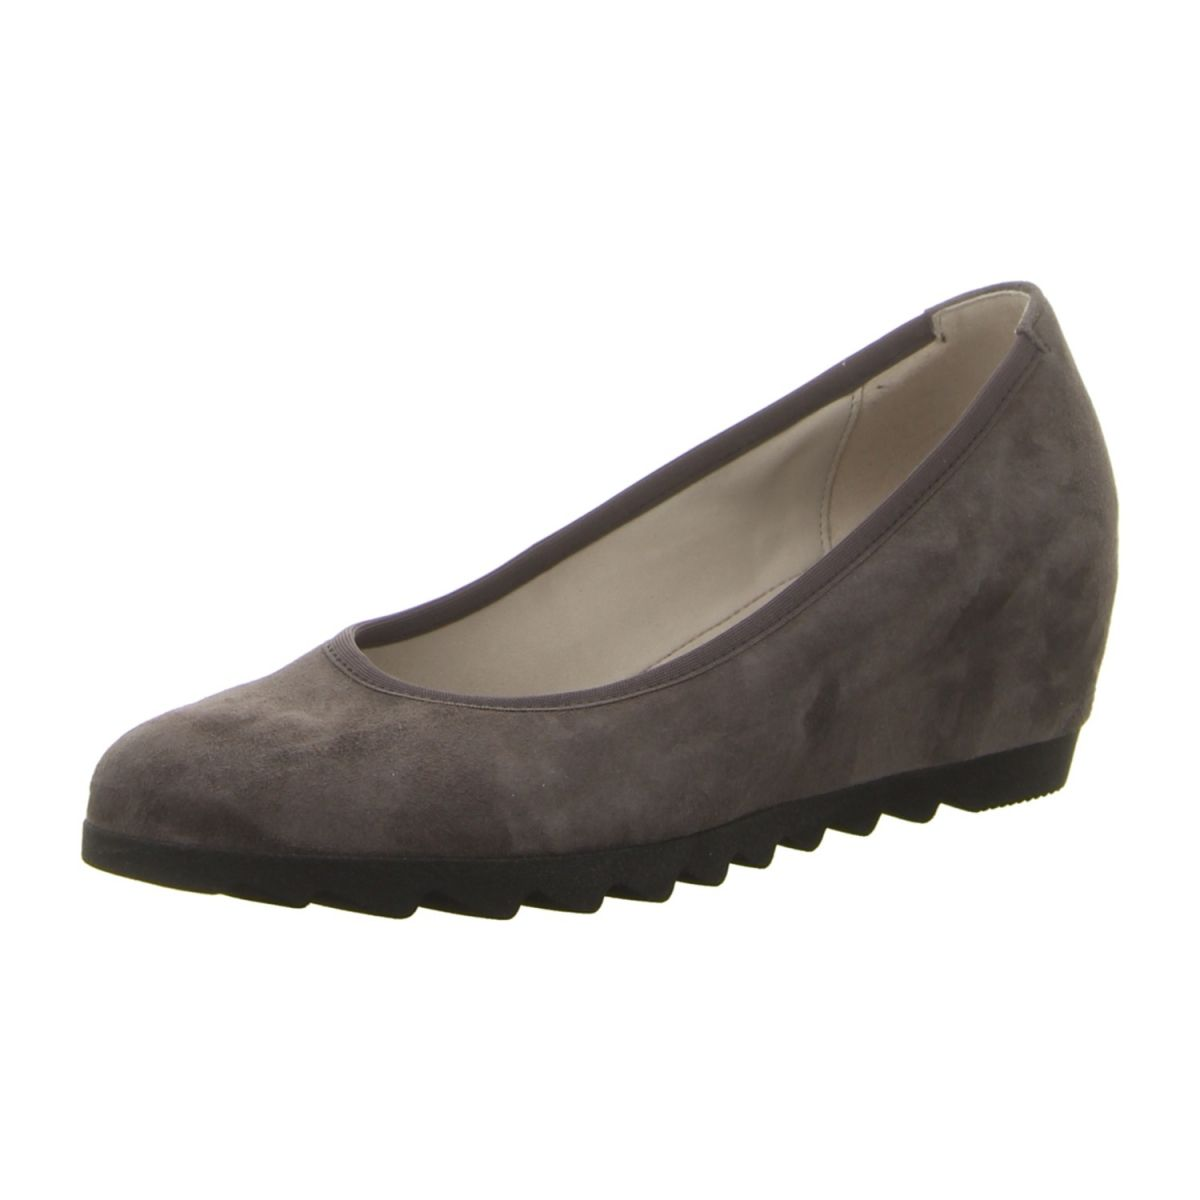 NEU: Gabor Pumps 75.320.19 - dark-grey -